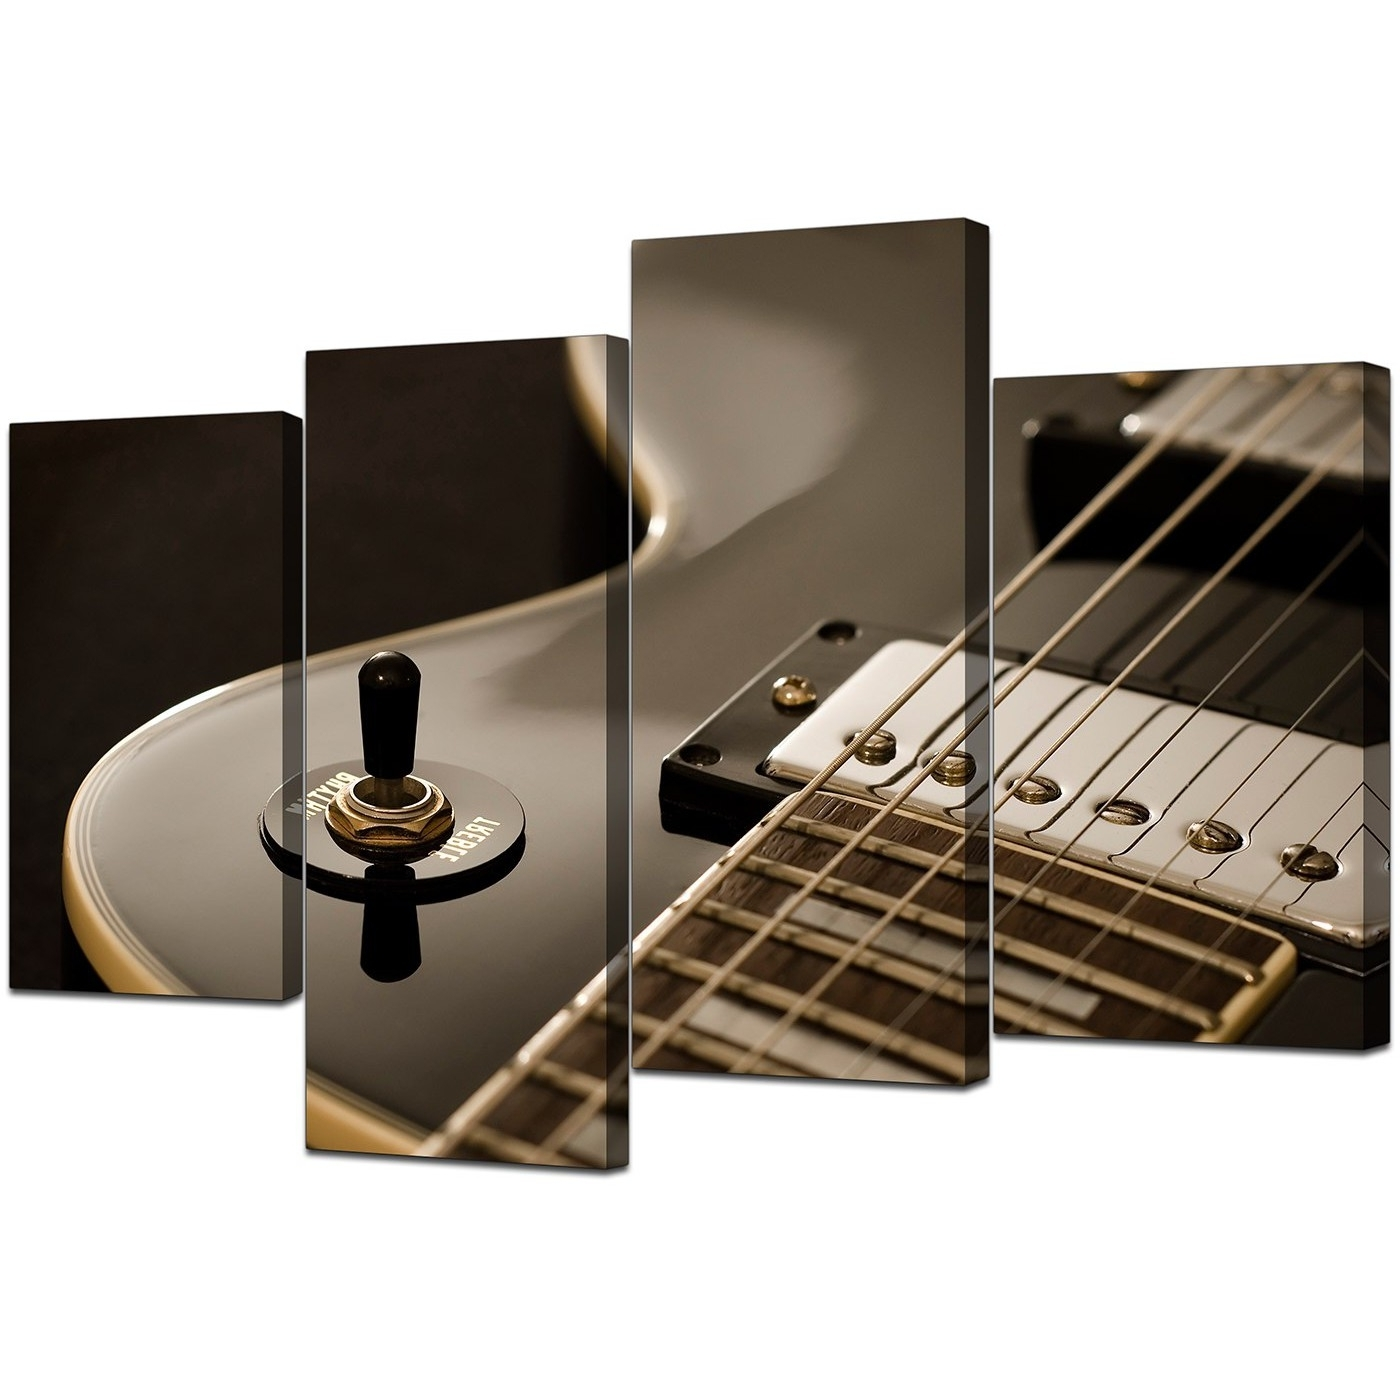 Well Liked Canvas Prints Of Guitar In Black & White For Your Teenage Boys Bedroom Pertaining To Guitar Canvas Wall Art (View 15 of 15)